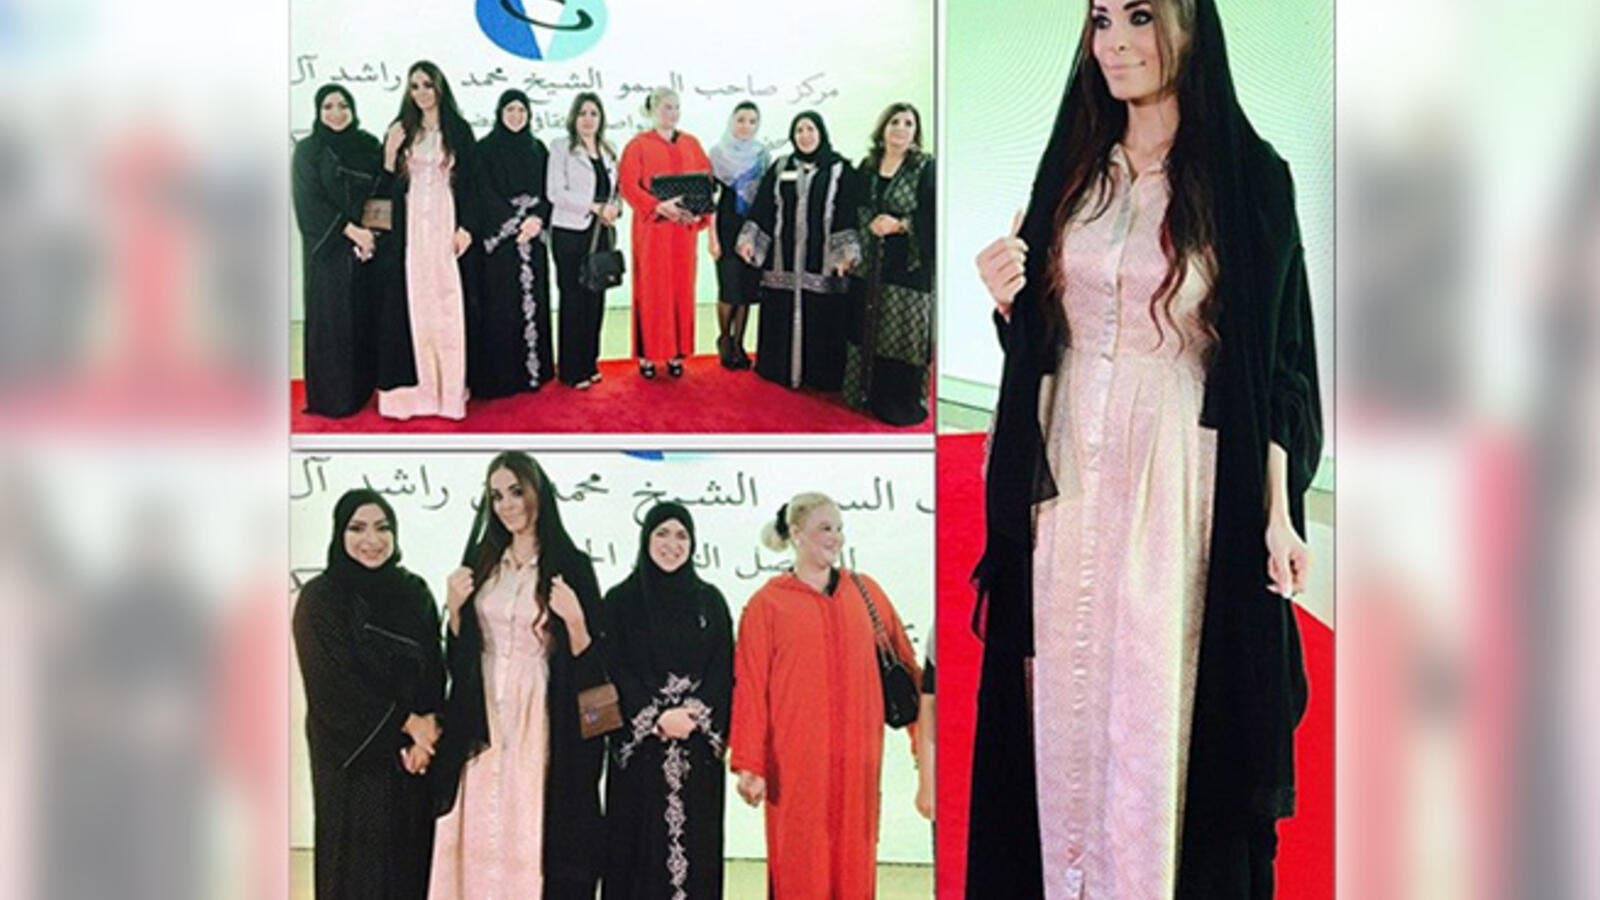 Dominique dressed modestly at the Quran event in the UAE. (Image: Facebook)